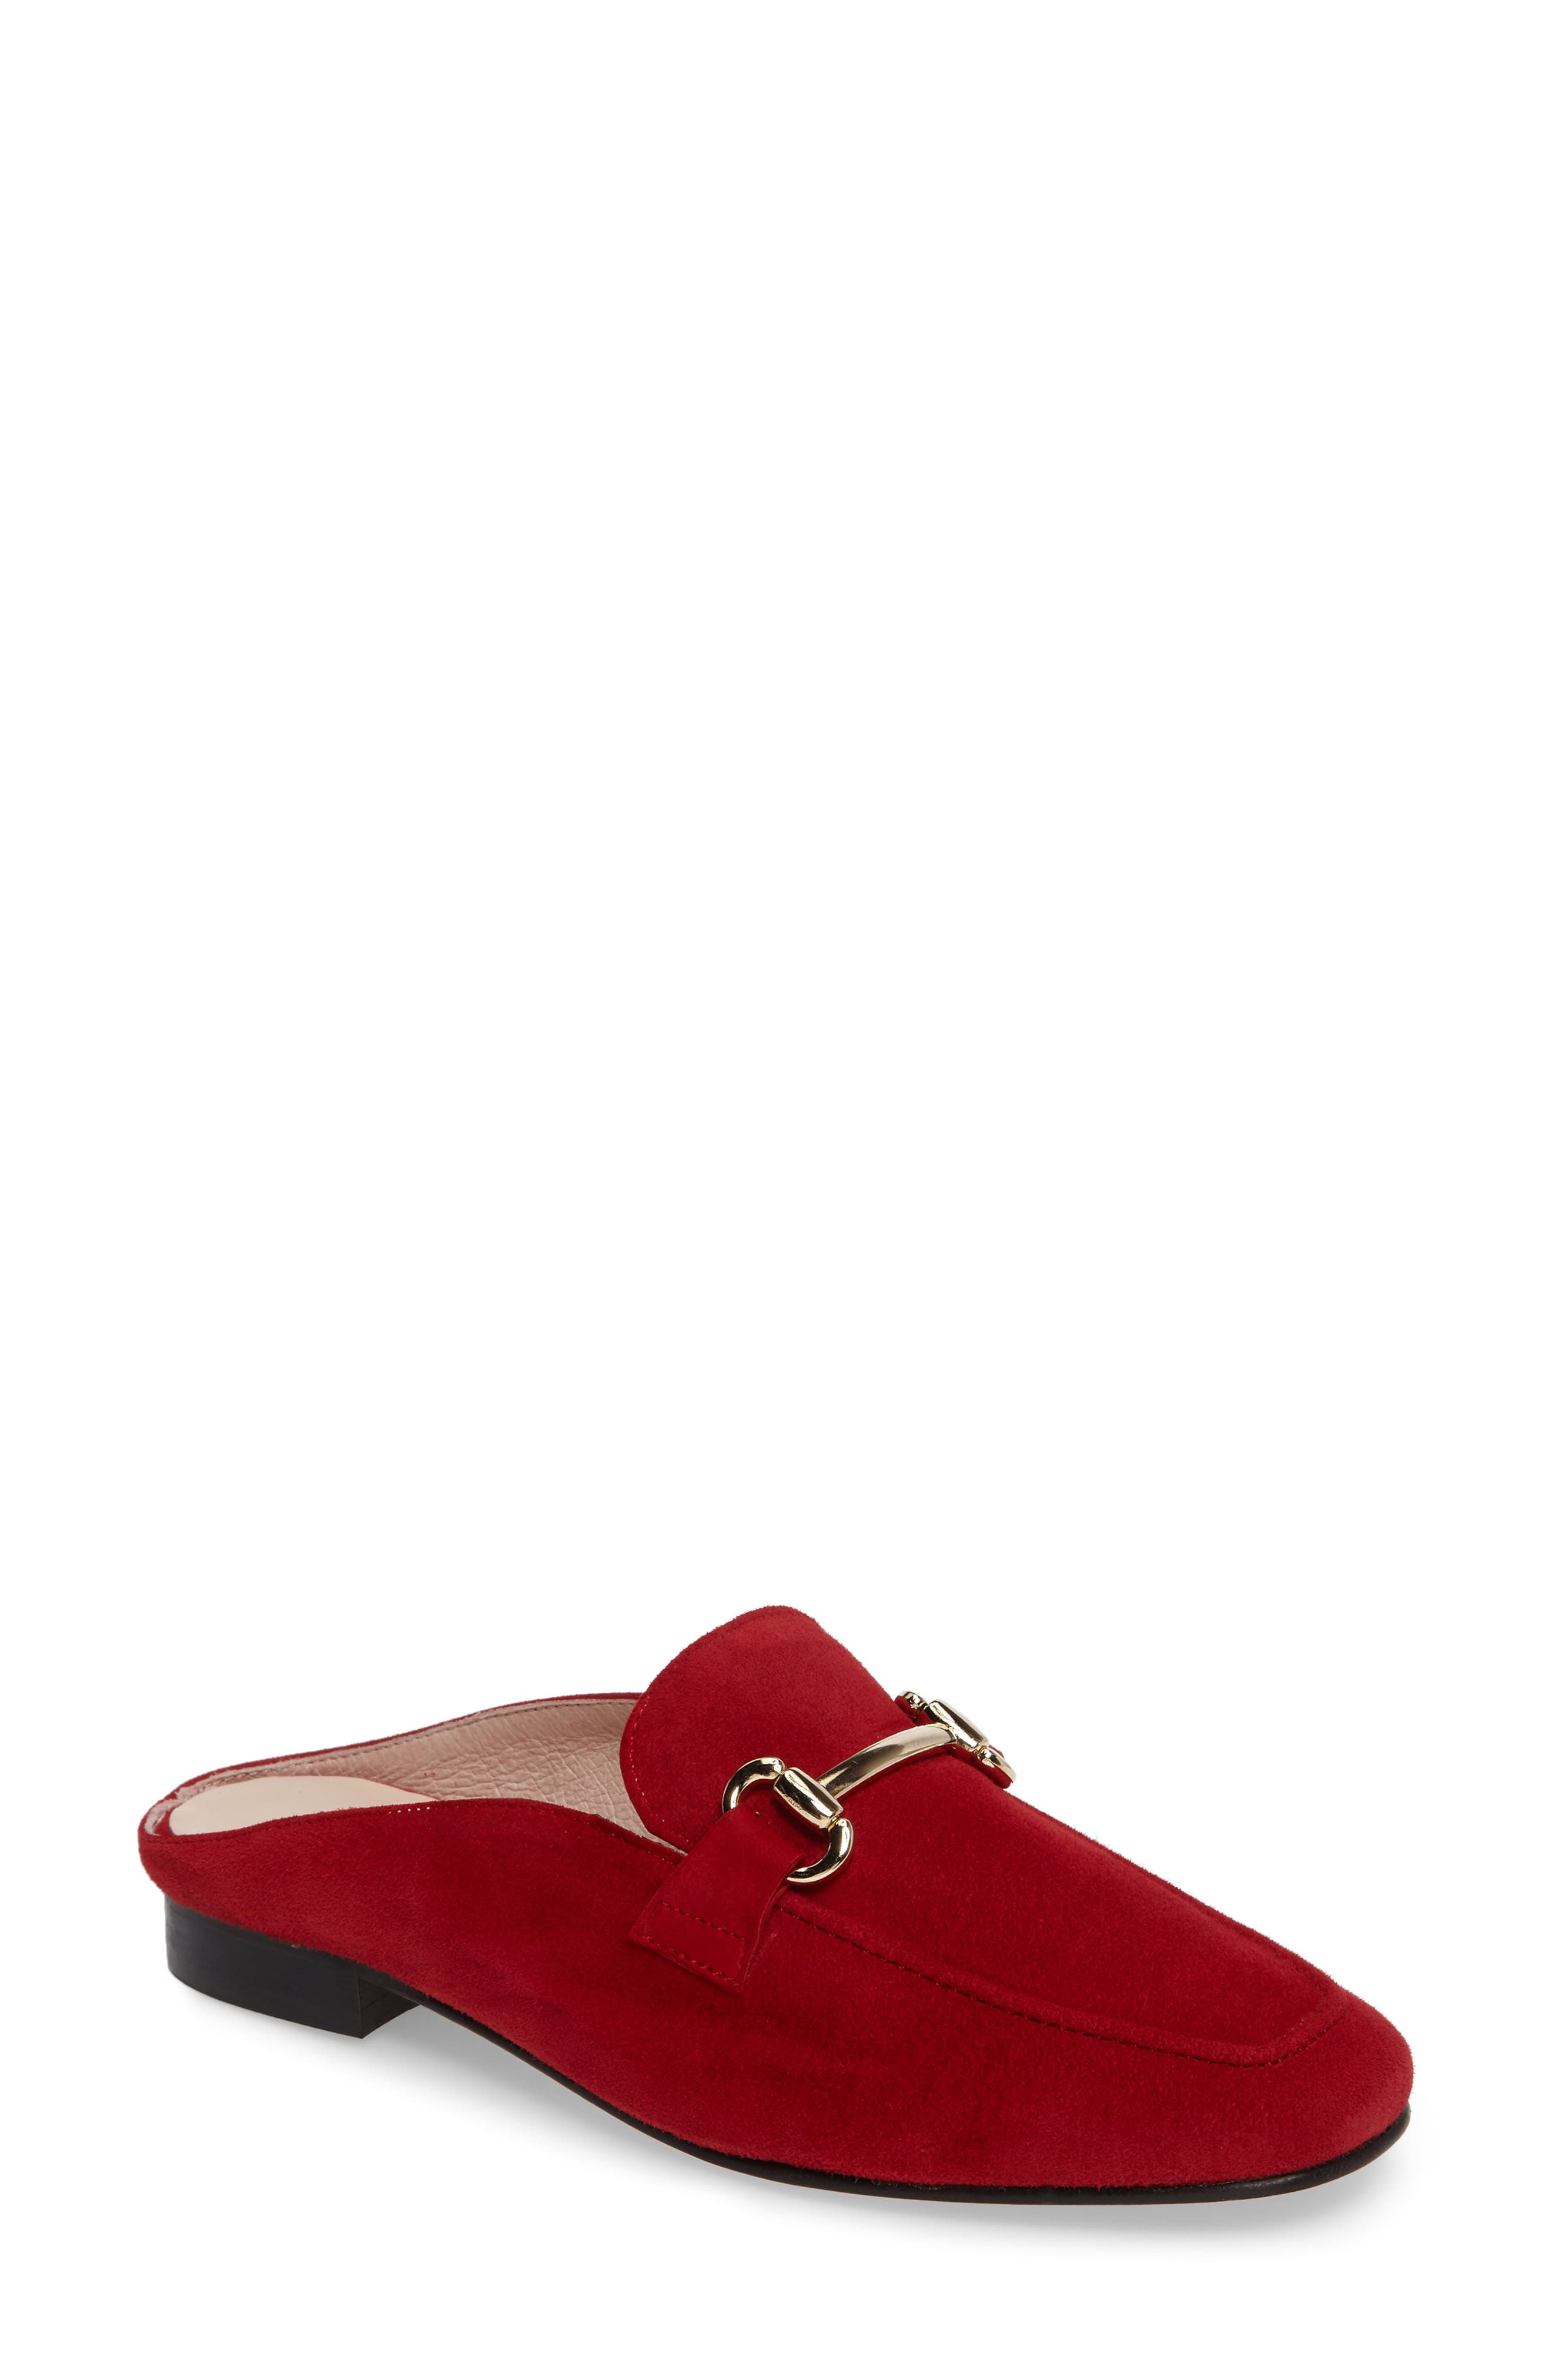 Sorrento Loafer Mule,                         Main,                         color, RED SUEDE